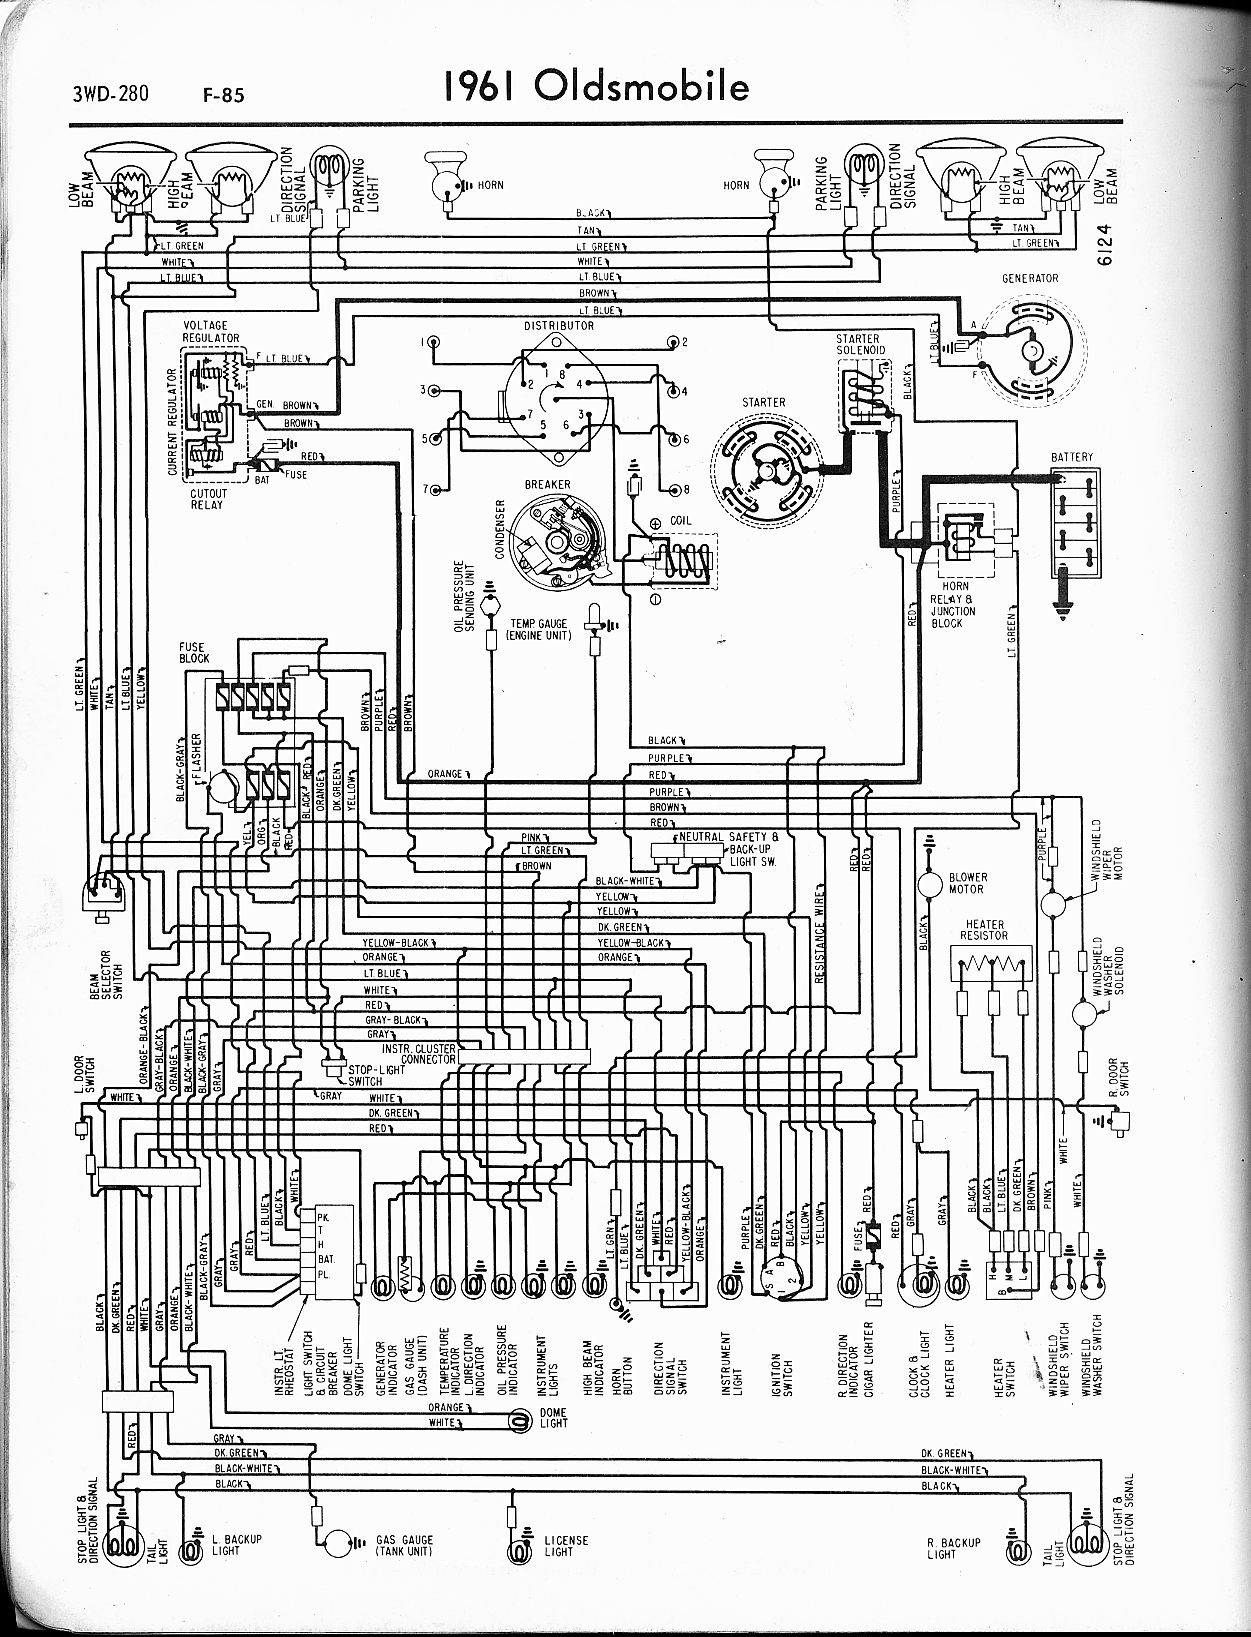 Gm Horn Relay Wiring Diagram 1979 Electrical Engine Harness For Library Rh 88 Skriptoase De Switch 1970 Chevelle